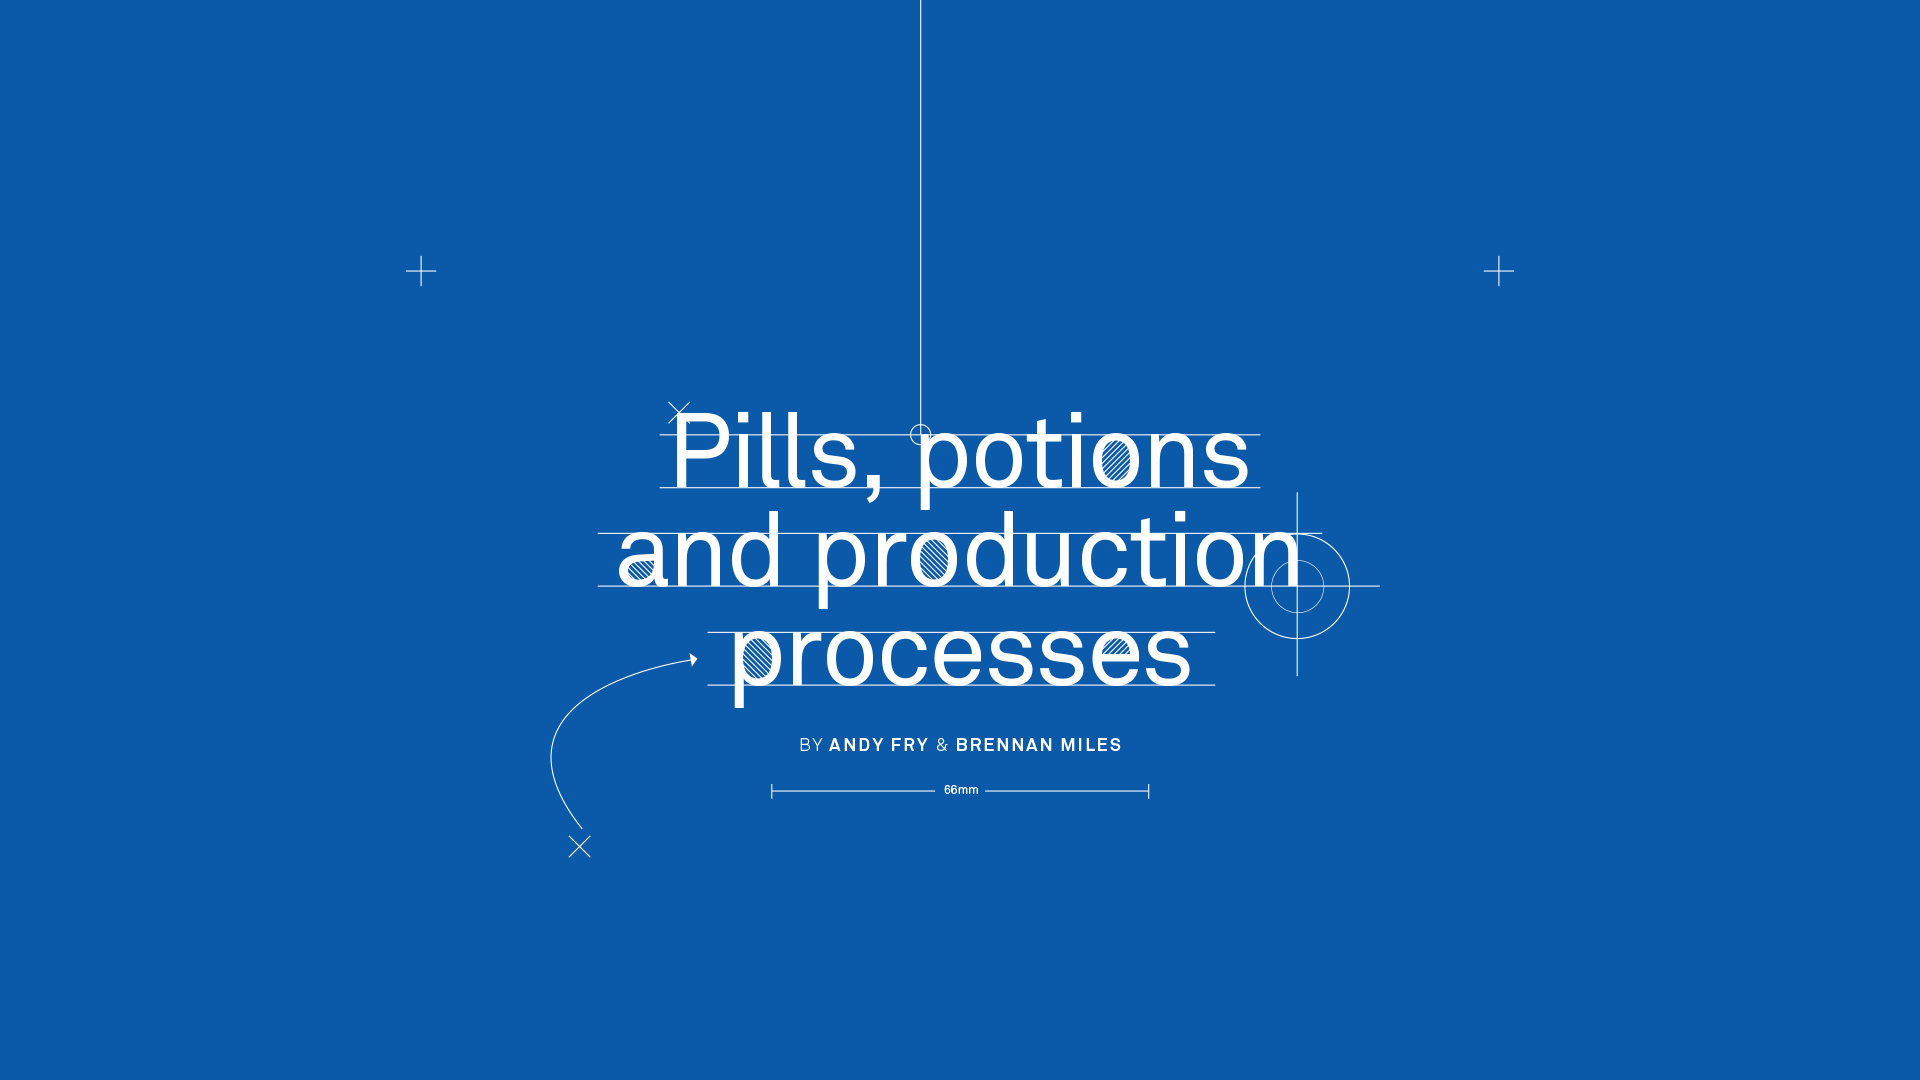 Pills potions and production processes